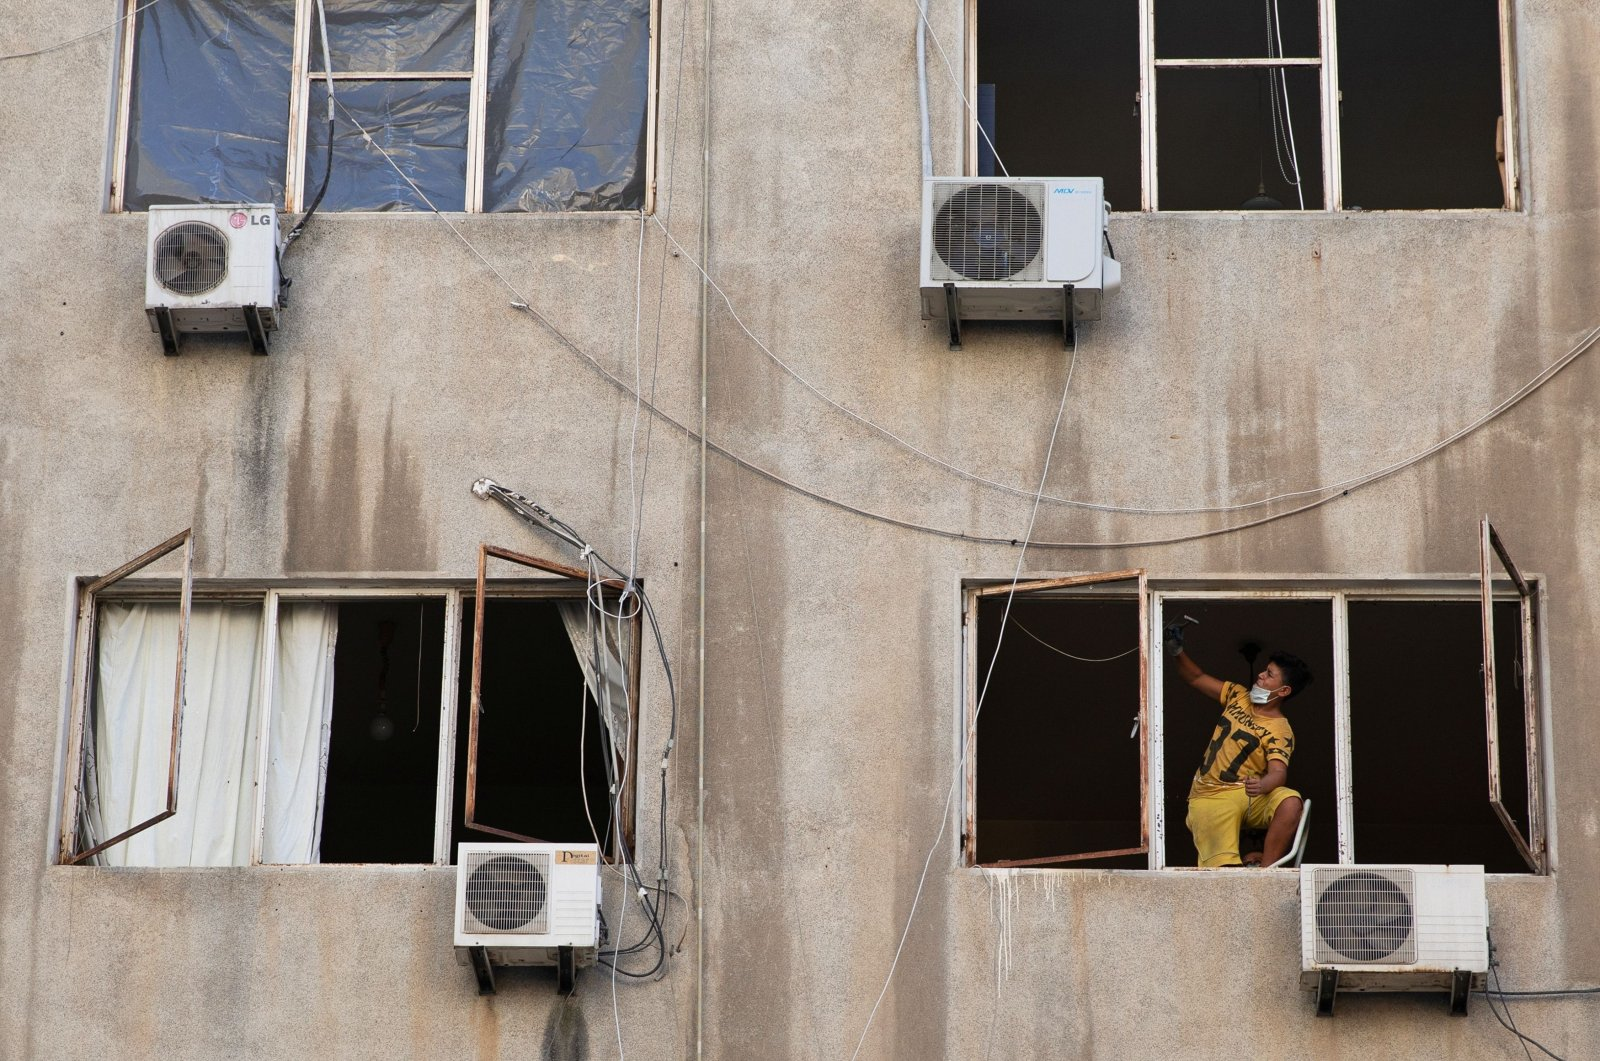 A boy fixes a damaged window in the aftermath of a massive explosion at the port area, Beirut, Aug. 17, 2020. (REUTERS Photo)